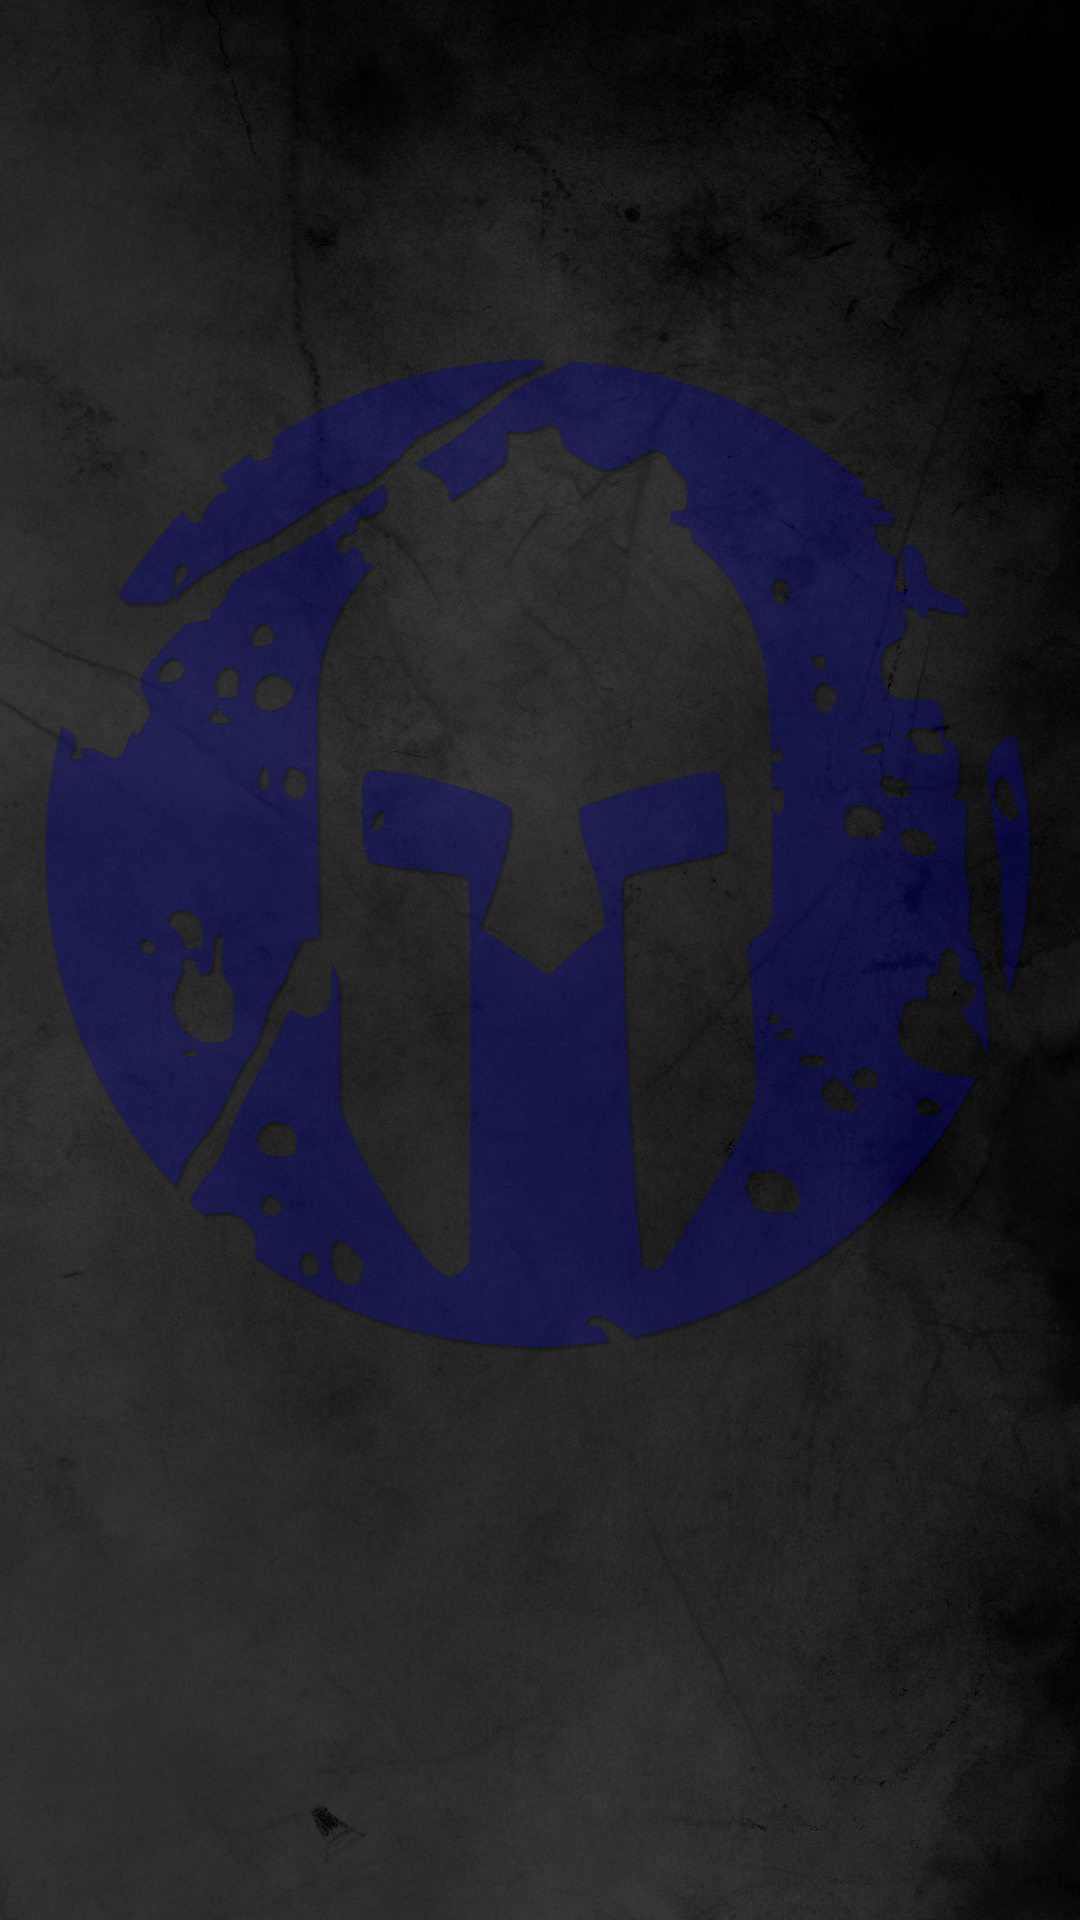 PC 1080x1920 Spartan Wallpaper, BsnSCB Graphics